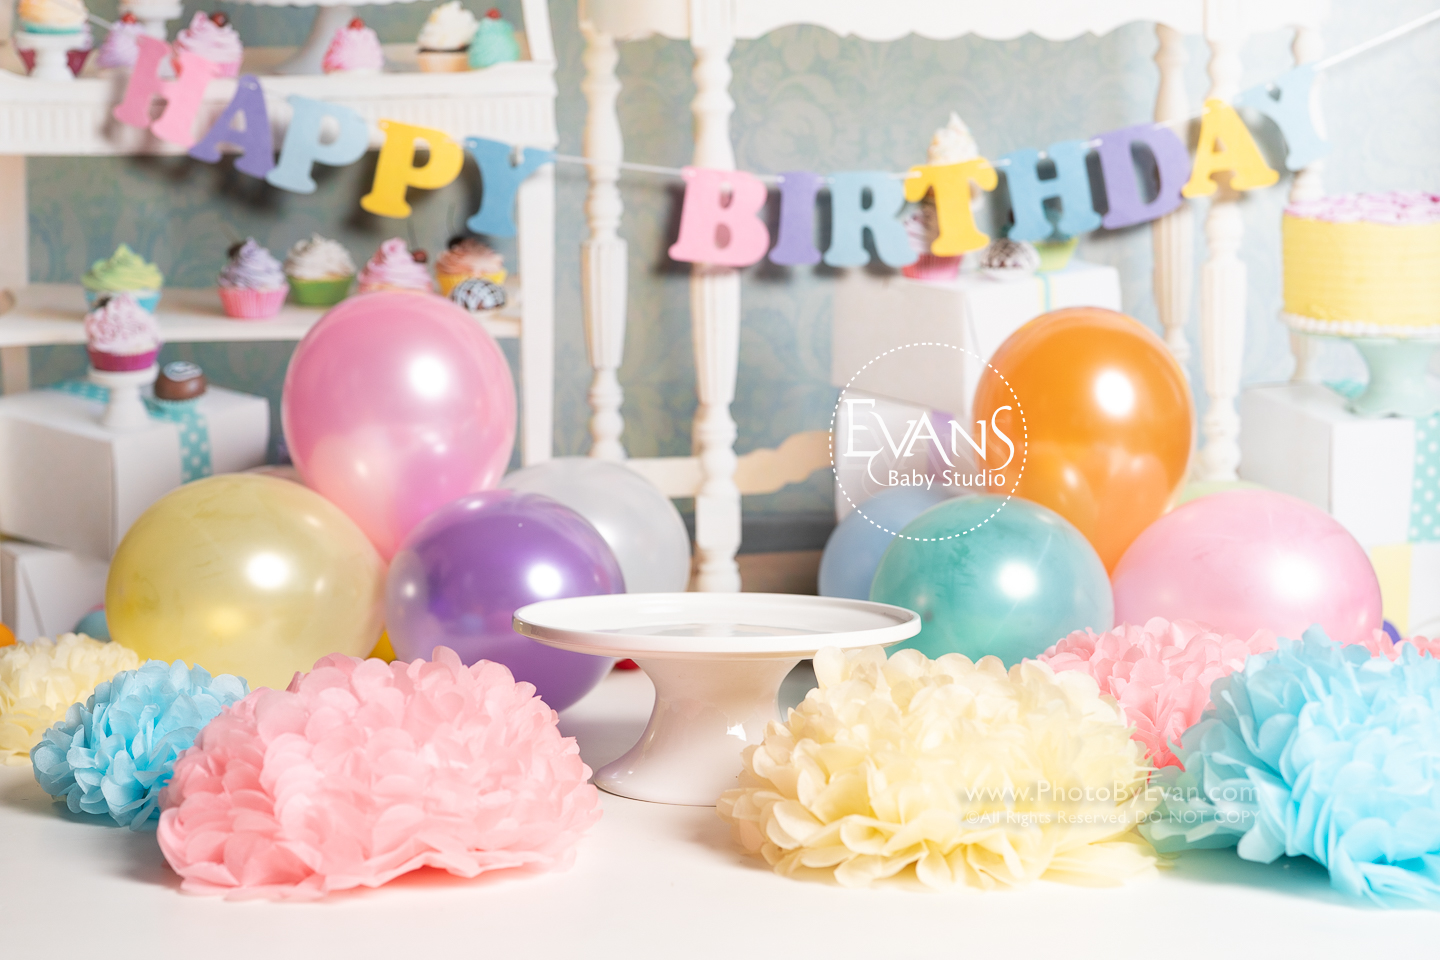 bb生日,bb生日攝影,1歲生日攝影,2歲生日攝影,嬰兒生日,生日禮物,生日拍攝,birthday, first birthday, first birthday photography, birthday photography, baby birthday photography